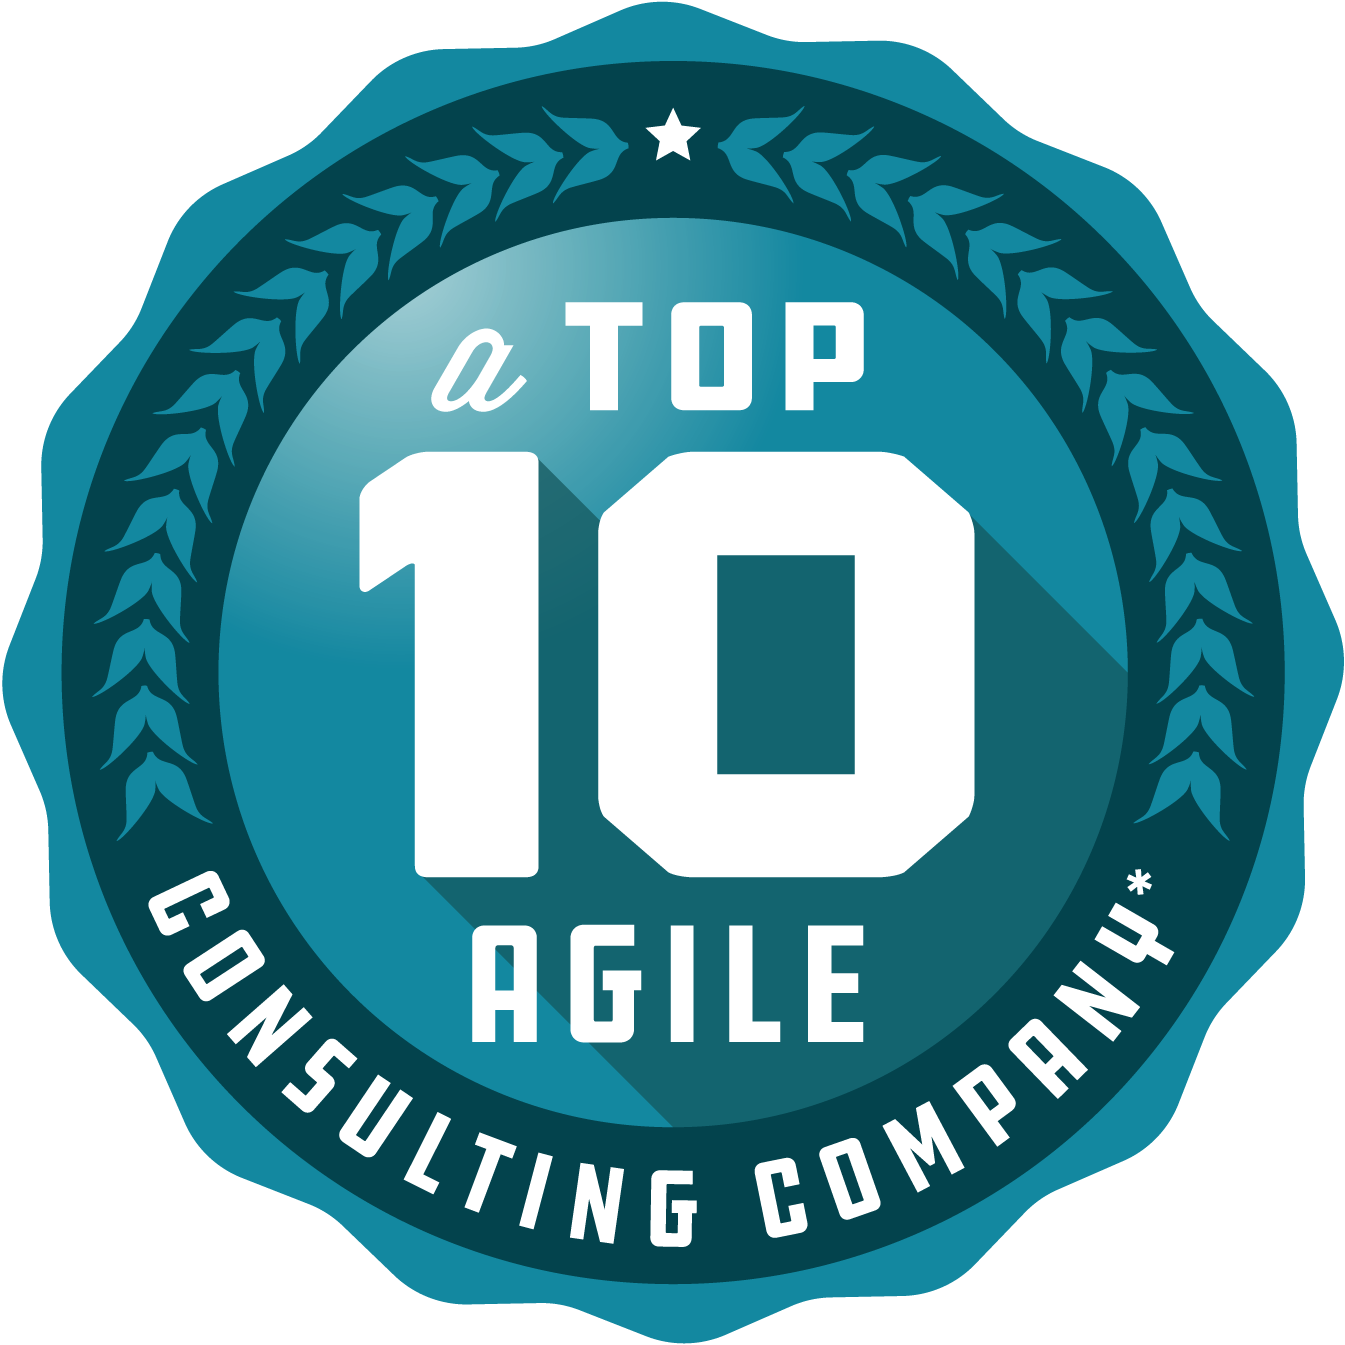 Top Ten Agile Consulting Company